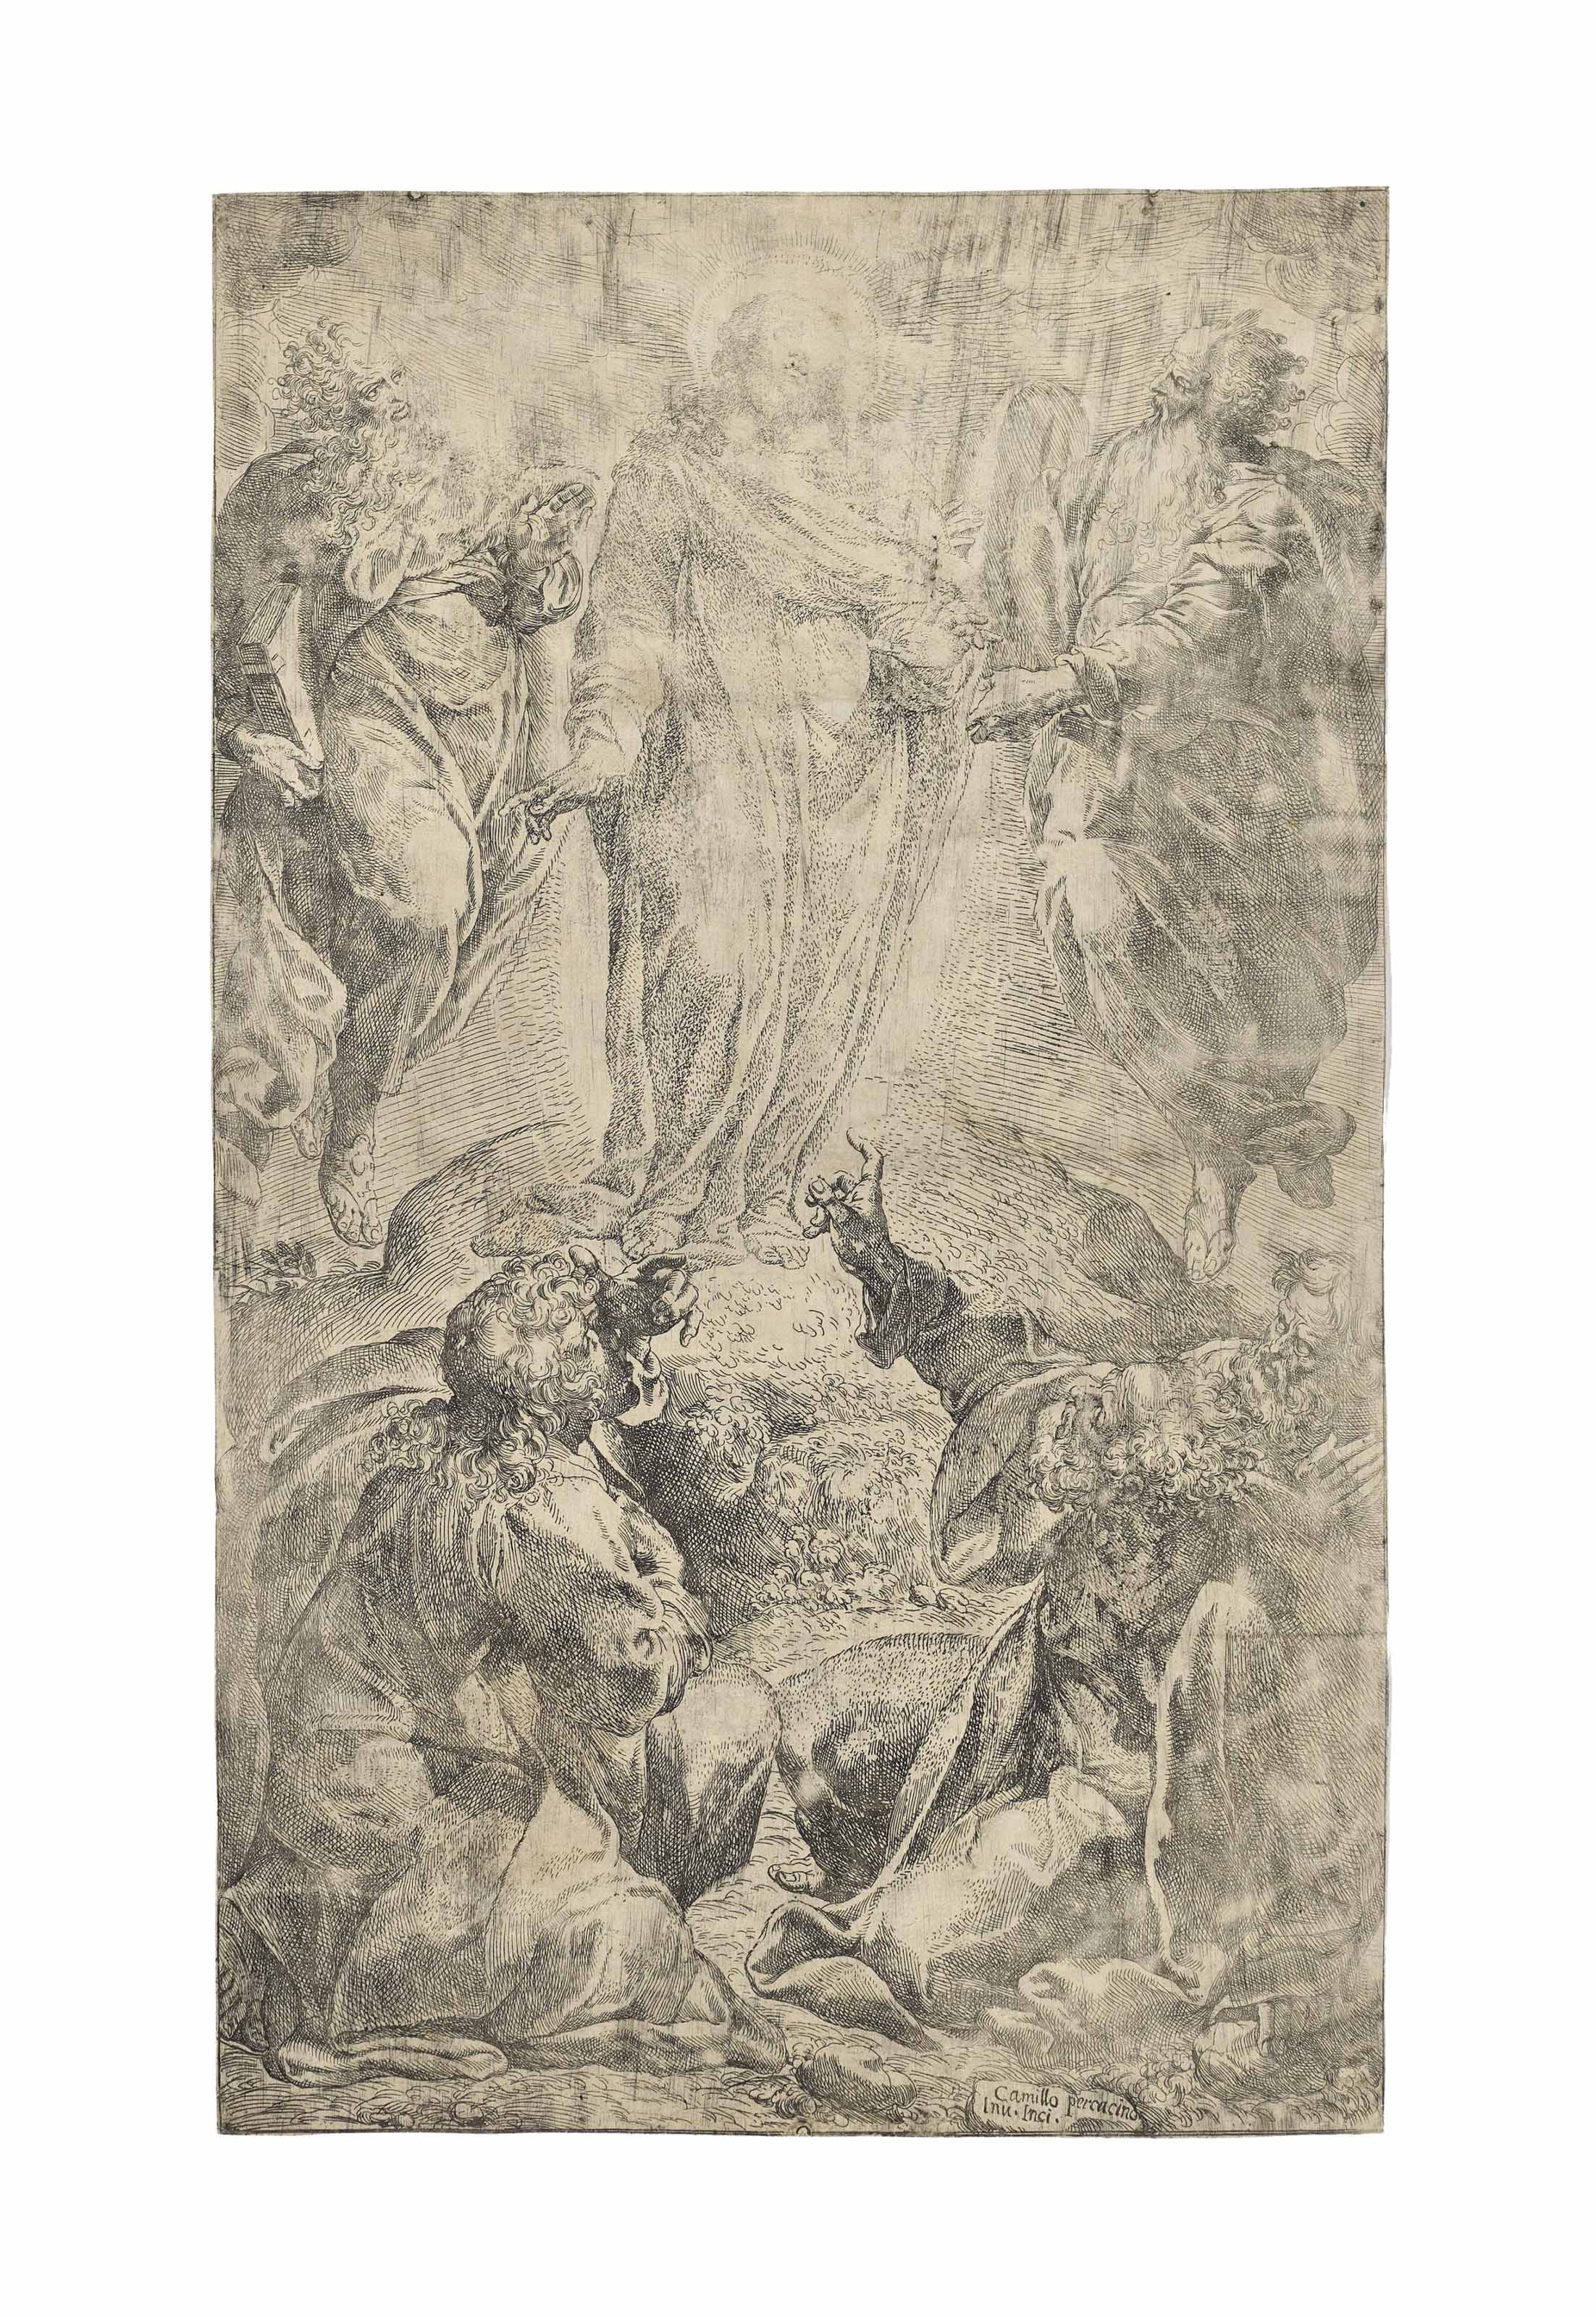 The Transfiguration (B. 4)